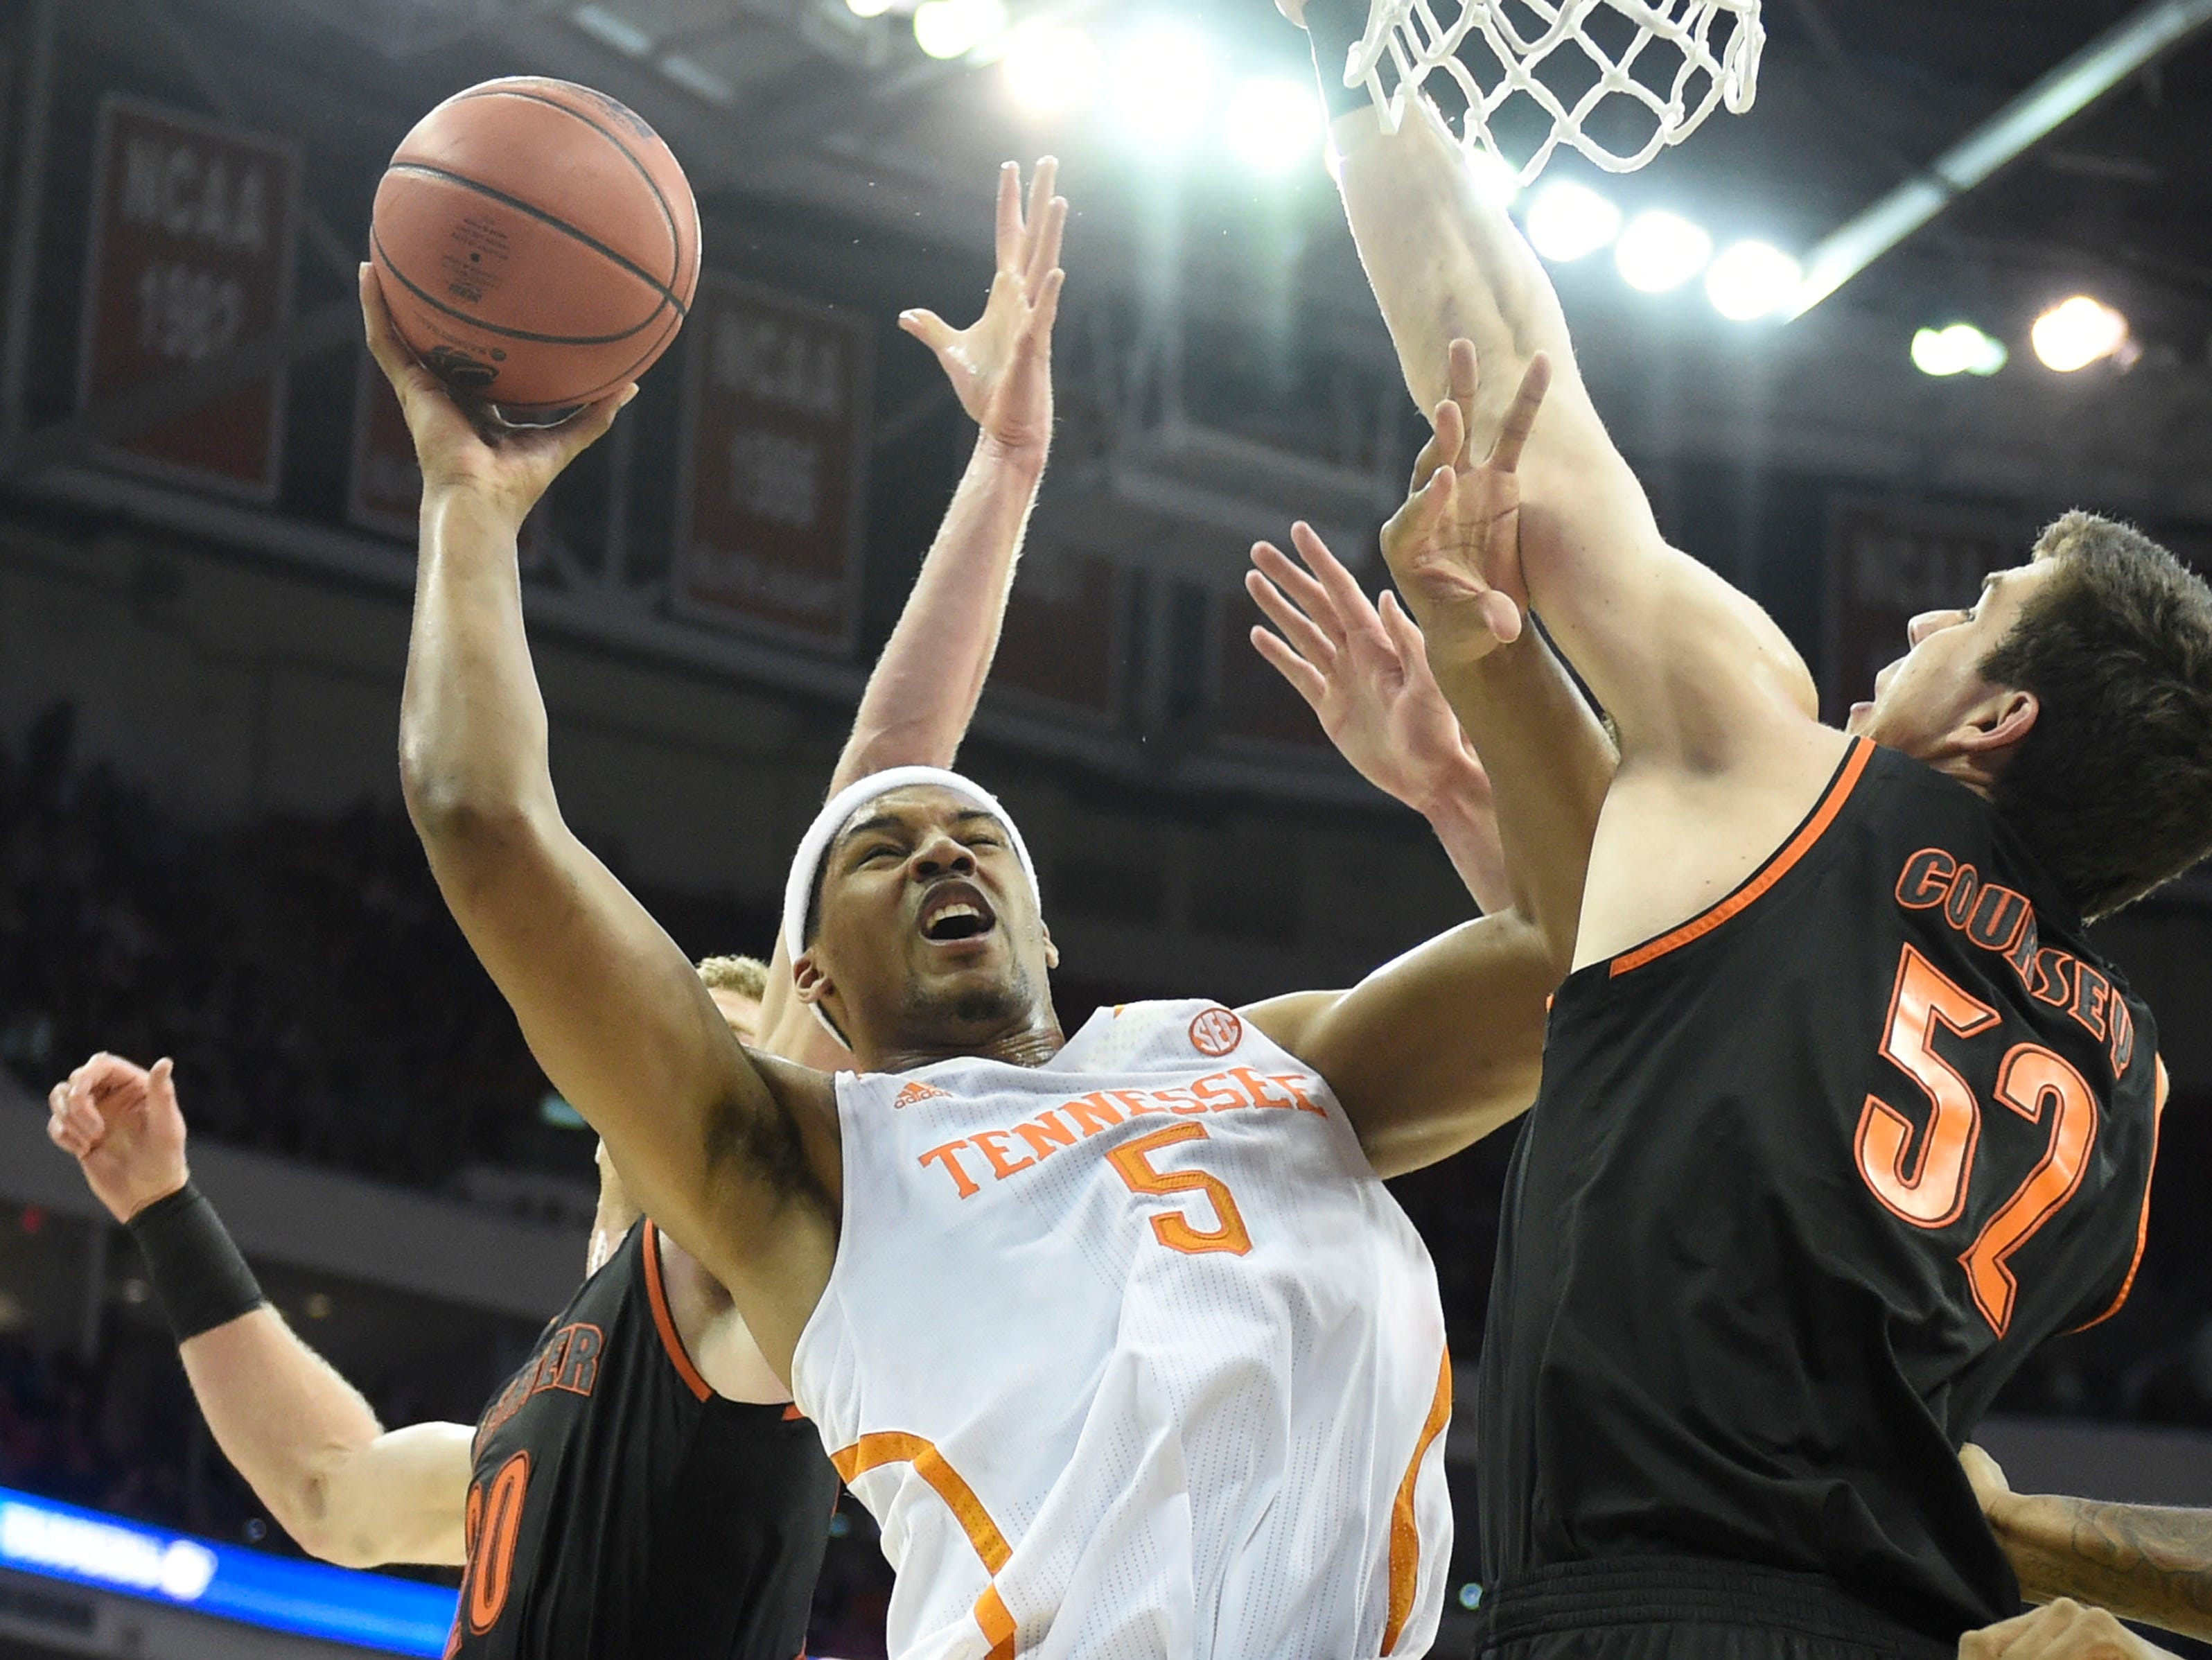 Tennessee forward Jarnell Stokes (5) goes up for a layup against Mercer forward Daniel Coursey (52) during the first half of a third-round NCAA tournament game at the PNC Arena in Raleigh, N.C. on Sunday, March 23, 2014.